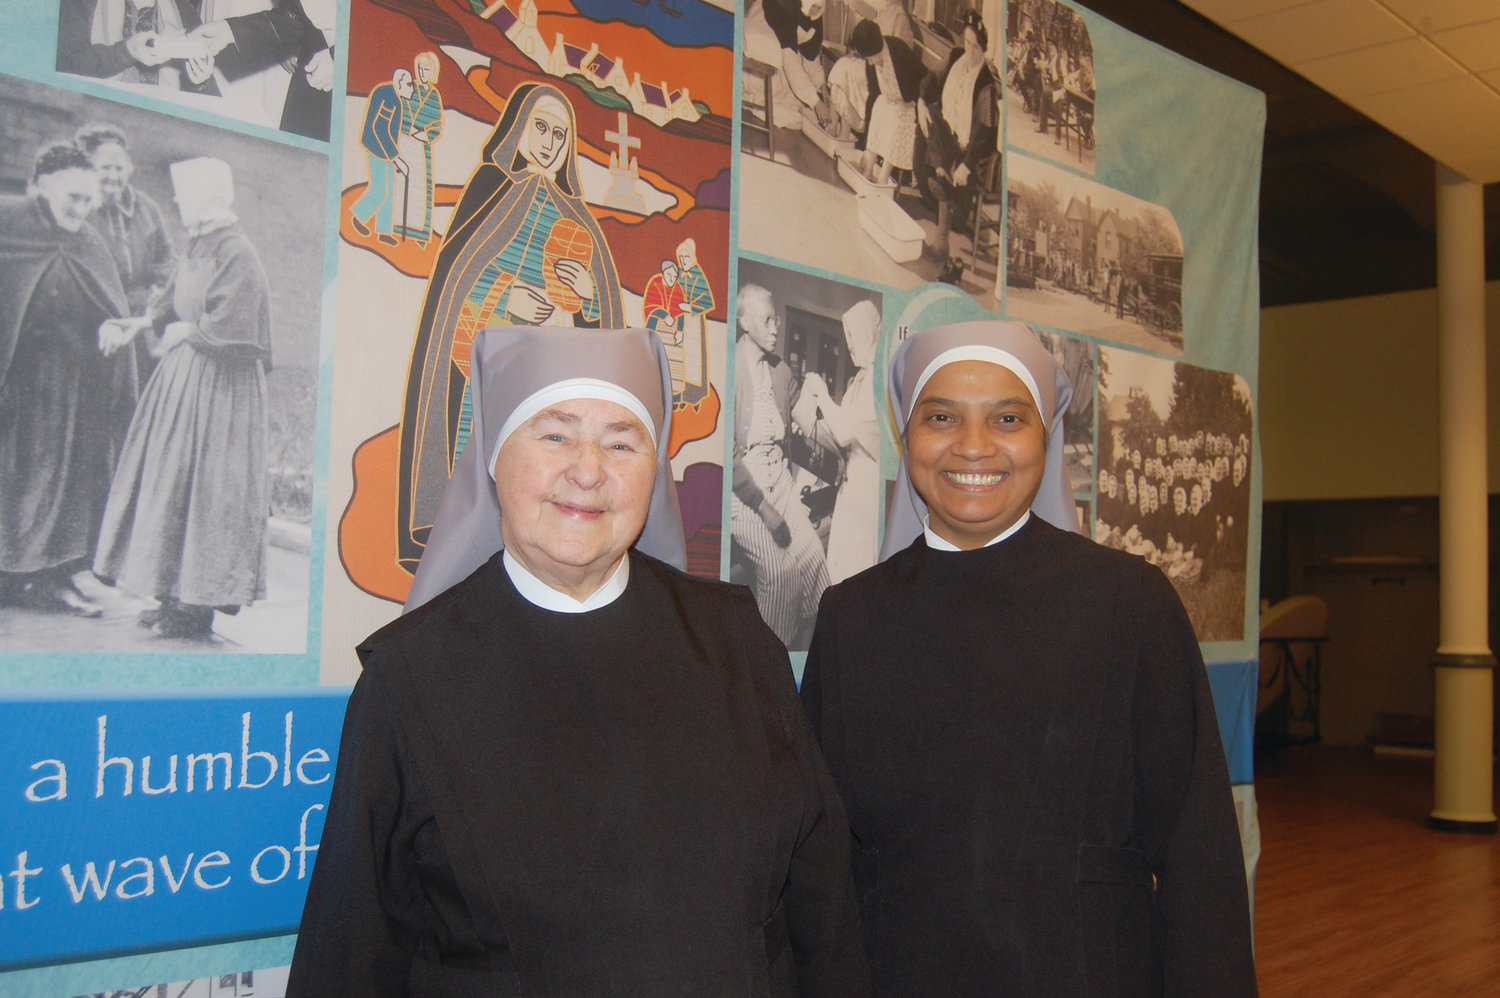 Sister Mary Agnes, left, administrator of St. Jeanne Jugan, and Sister Mercy Stella Theresa, Mother Superior, smile during the special anniversary celebration on Saturday, May 4, at the cathedral. The Little Sisters of the Poor trace their history in Rhode Island to 1881, when five Little Sisters traveled from France to open a home in Providence. In 1979, they opened their current home, the Jeanne Jugan Residence in Pawtucket. The home currently serves approximately 100 residents, including 27 independent living apartments.